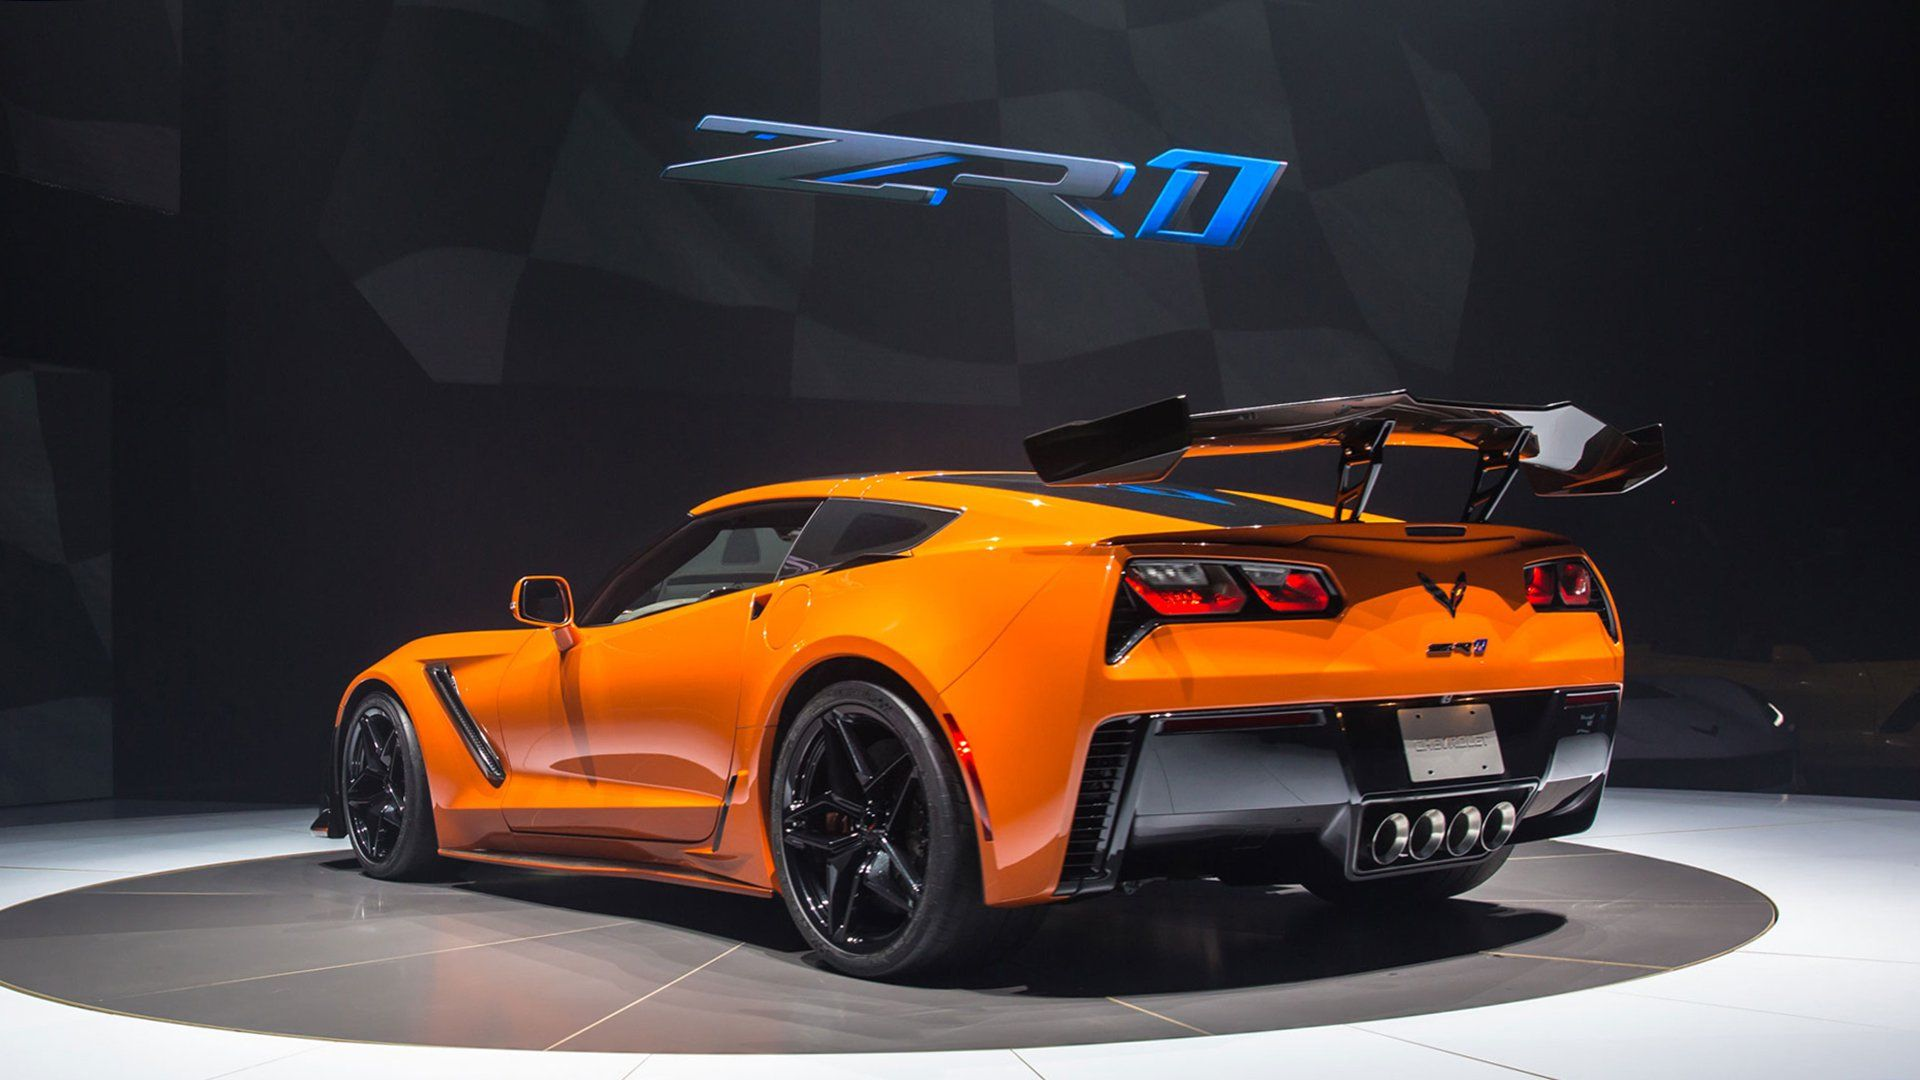 The 2019 Chevrolet Corvette ZR1 Will Try For a Sub 7 Minute